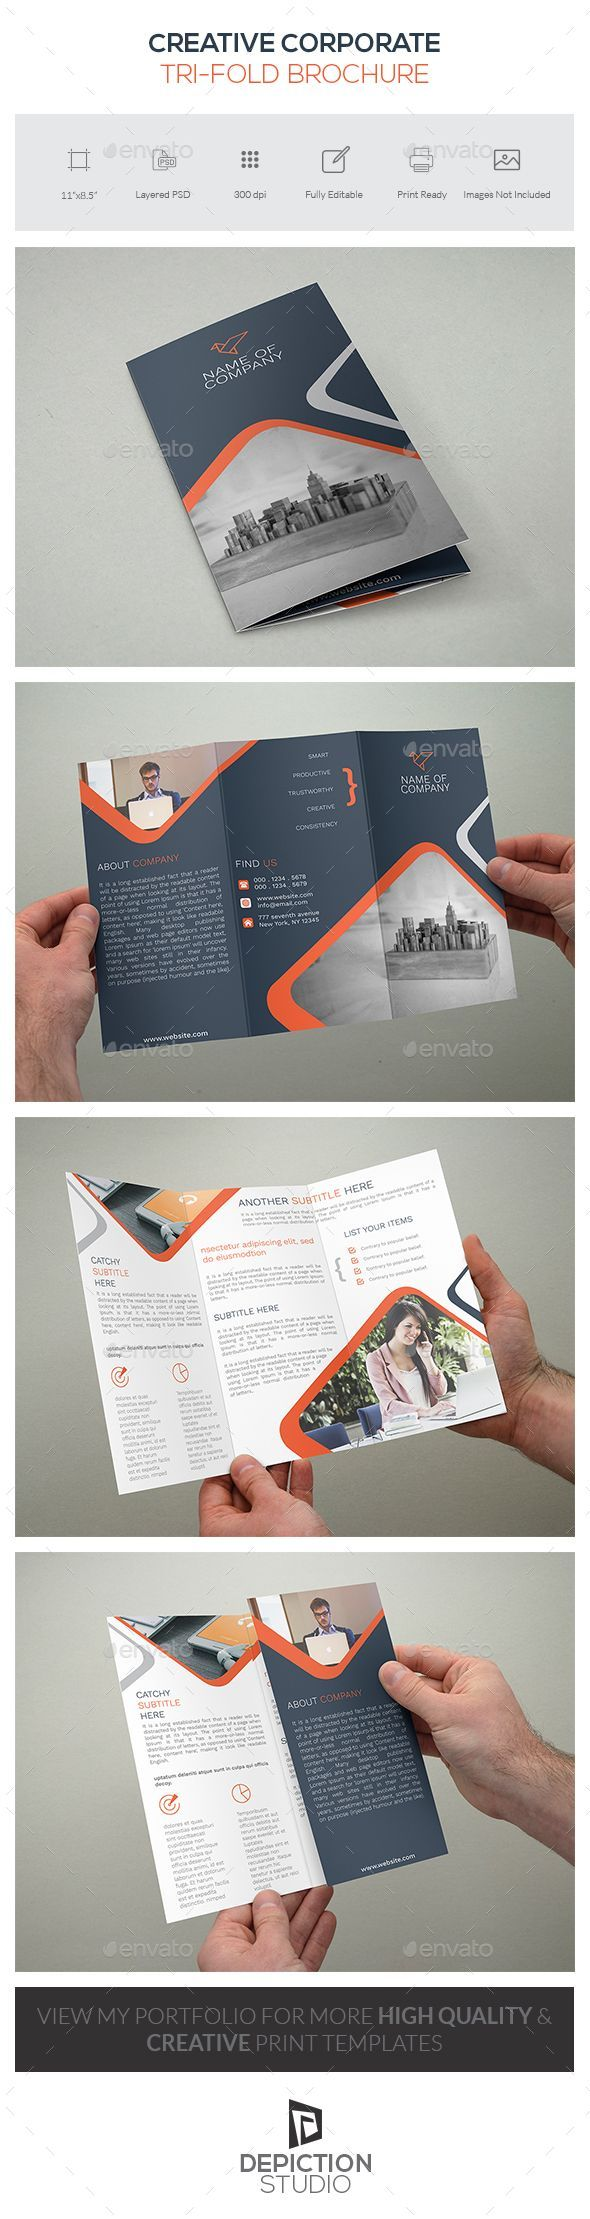 Below are two different file formats of the superman logo in a beveled - Get Your Attractive And Professional Real Estate Brochure Design Within 24 Hours Https